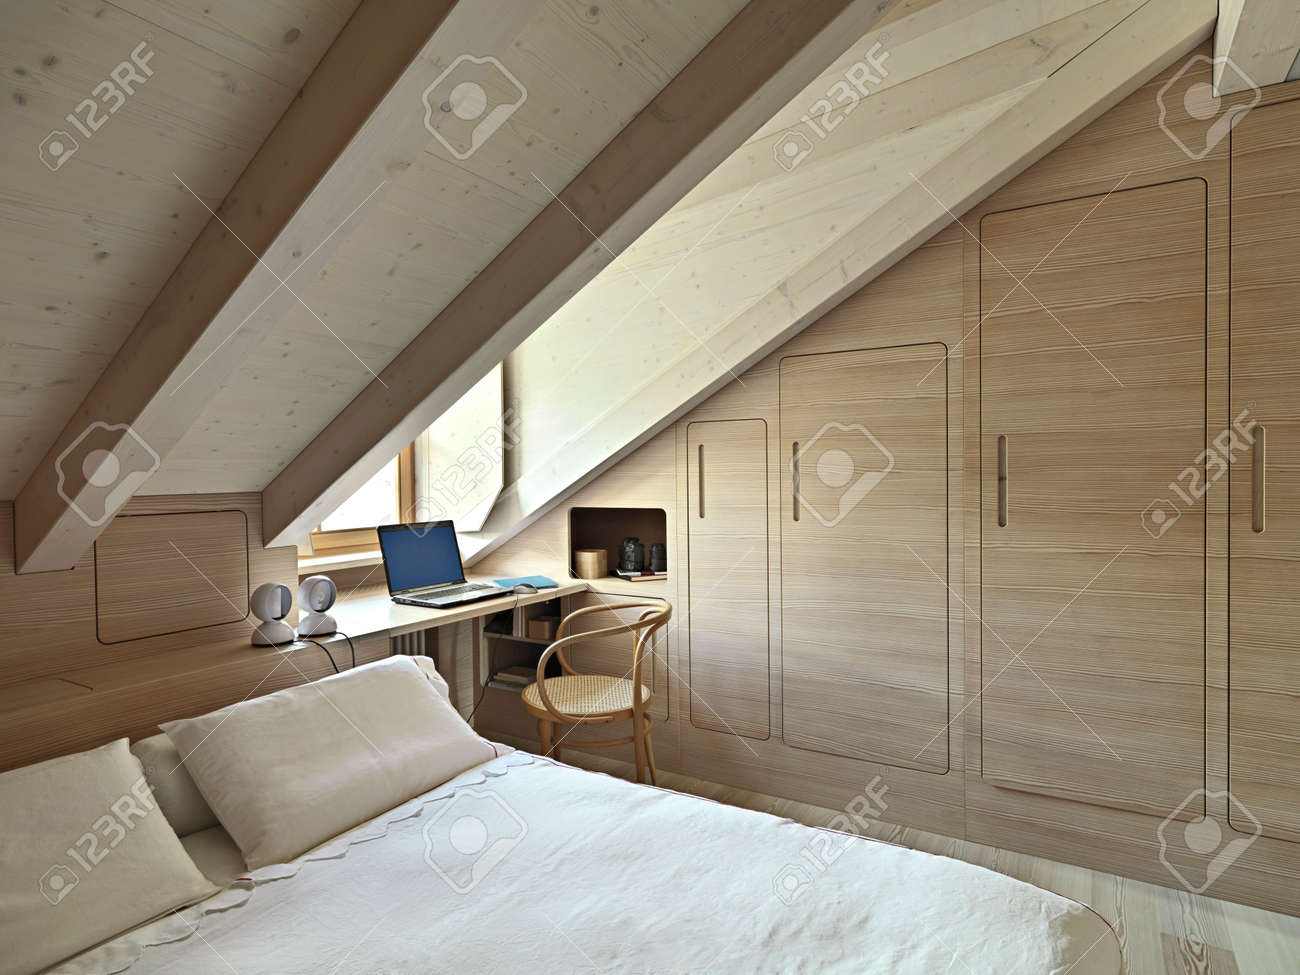 Interior View Of A Rustic Bedroom In The Attic Room With Wooden